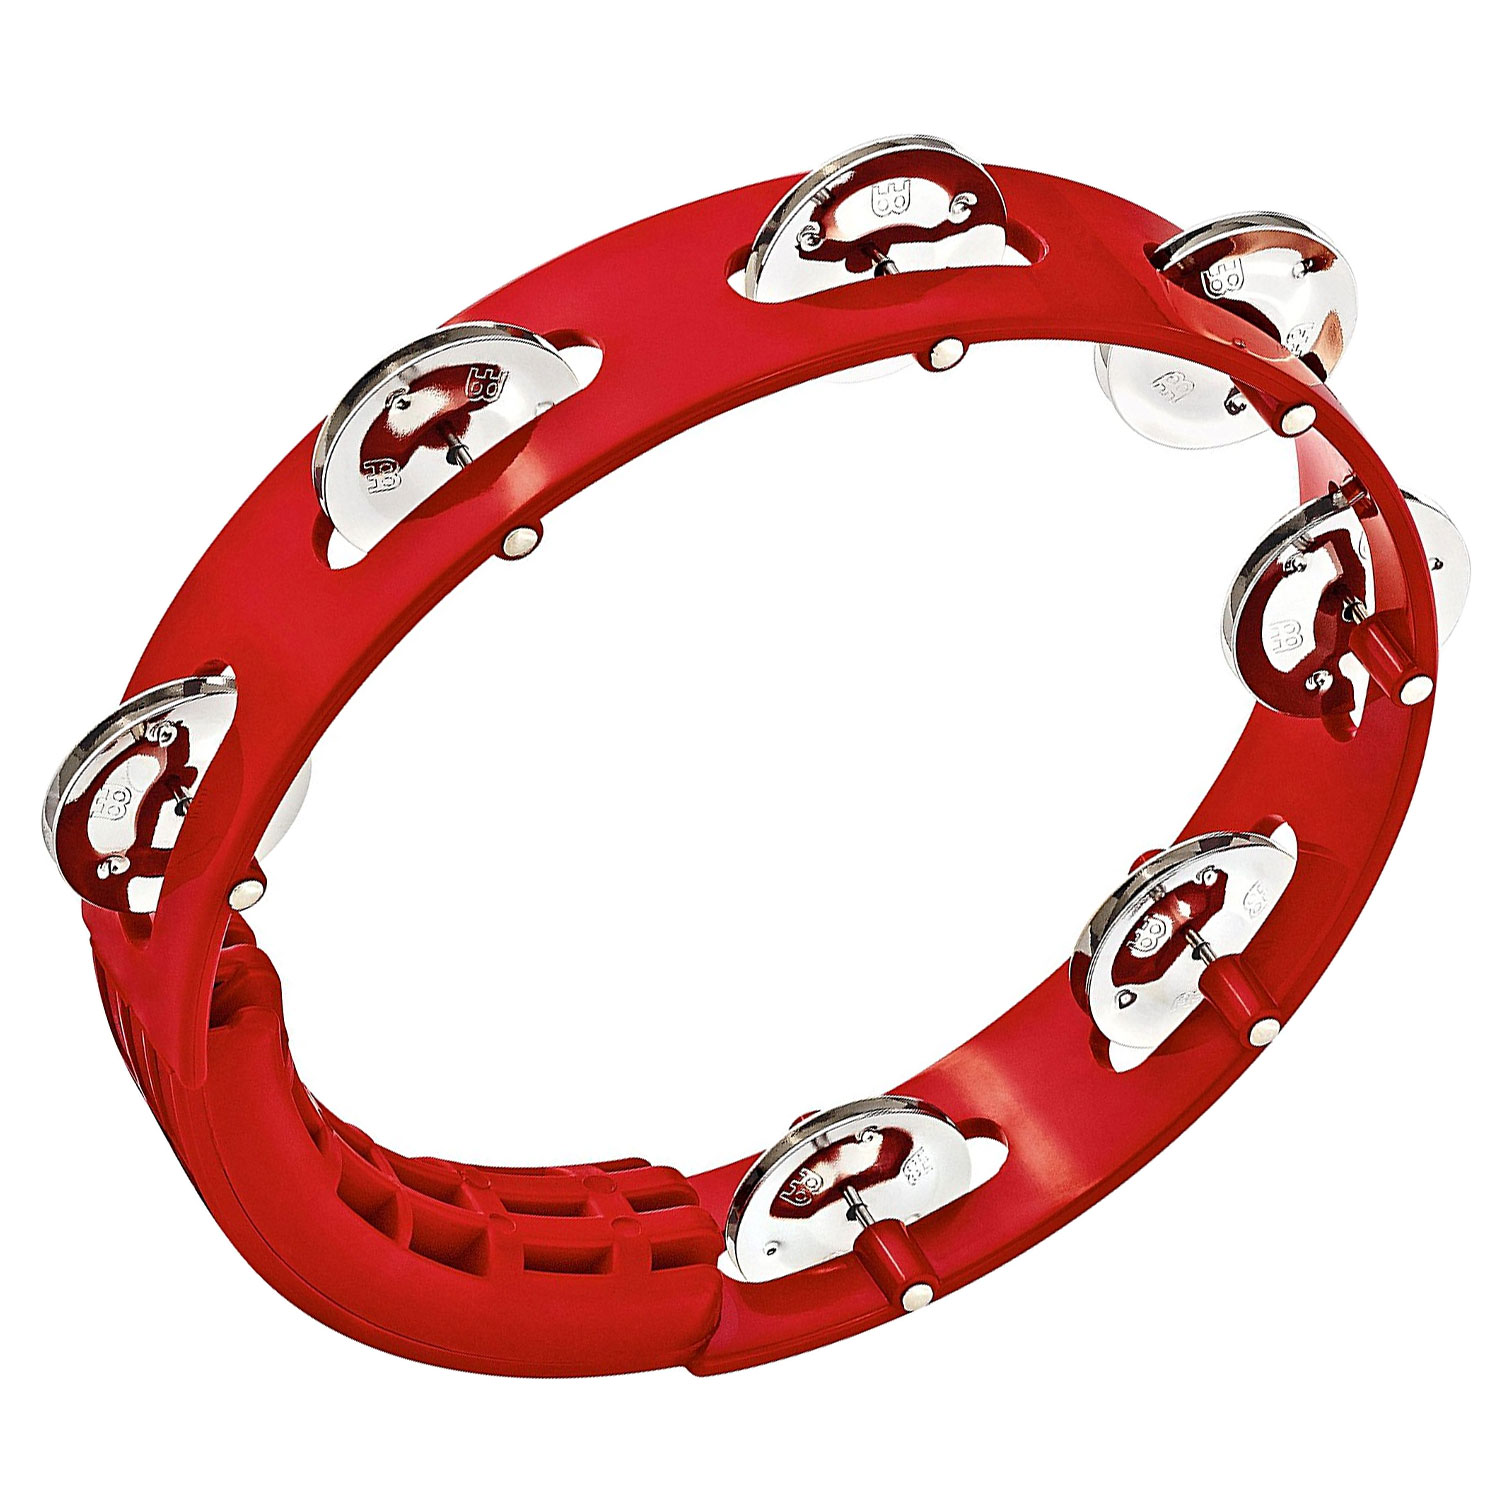 "Meinl 8"" Red Single Row Tour Tambourine with Steel Jingles"